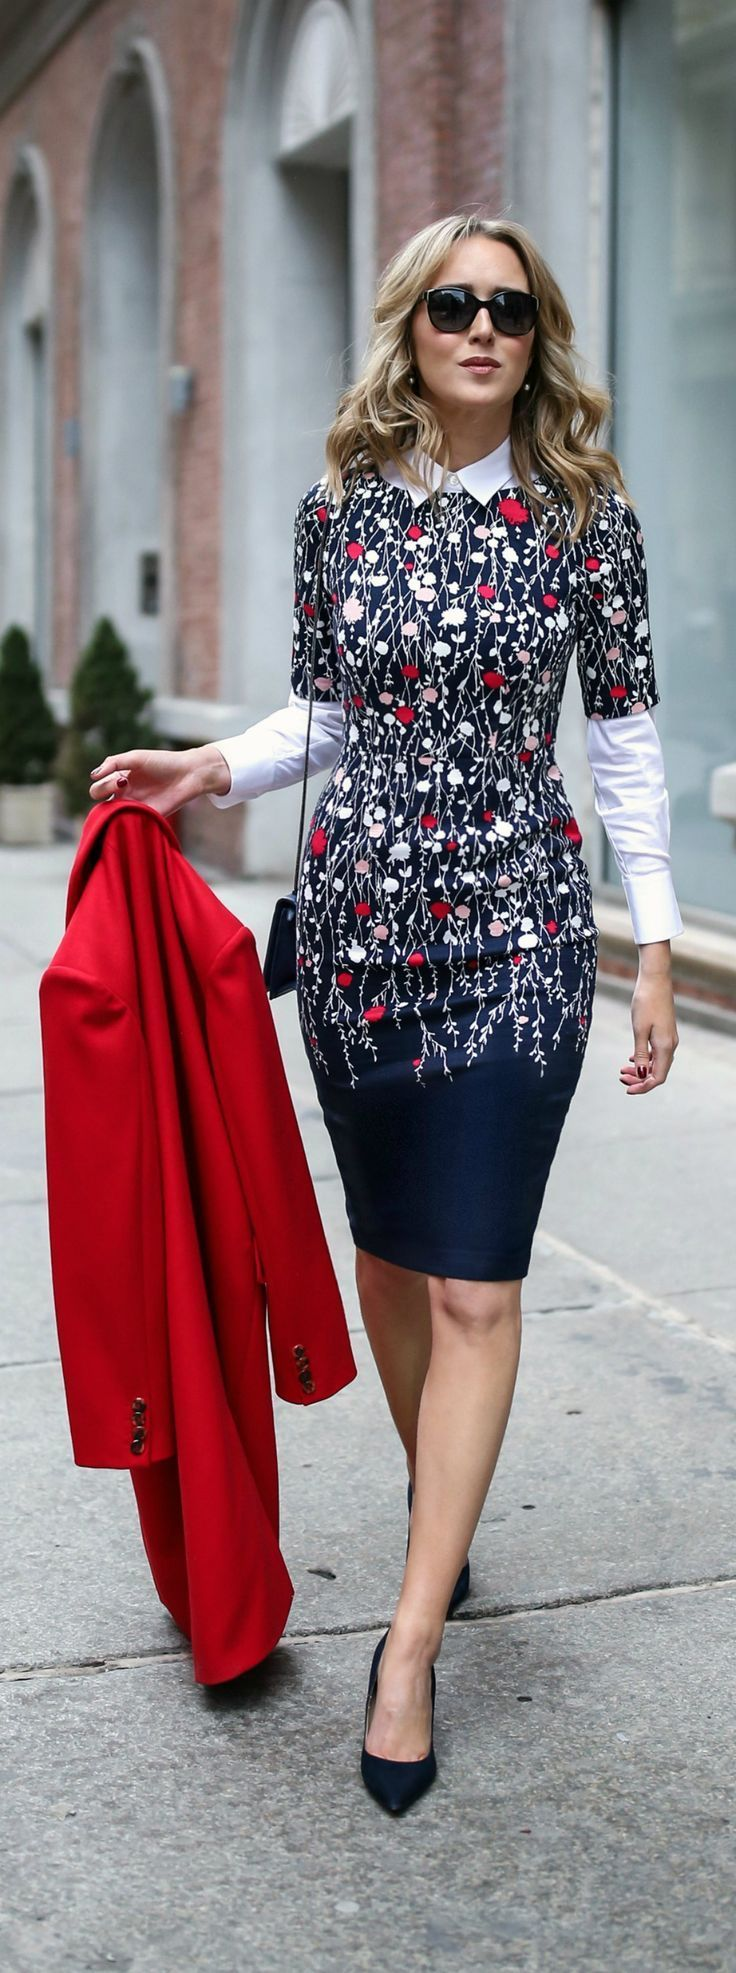 navy white red blush pink floral short sleeve sheath dress, layered white collared button down shirt, red wool coat, navy pointed toe pumps, classic workwear / office style